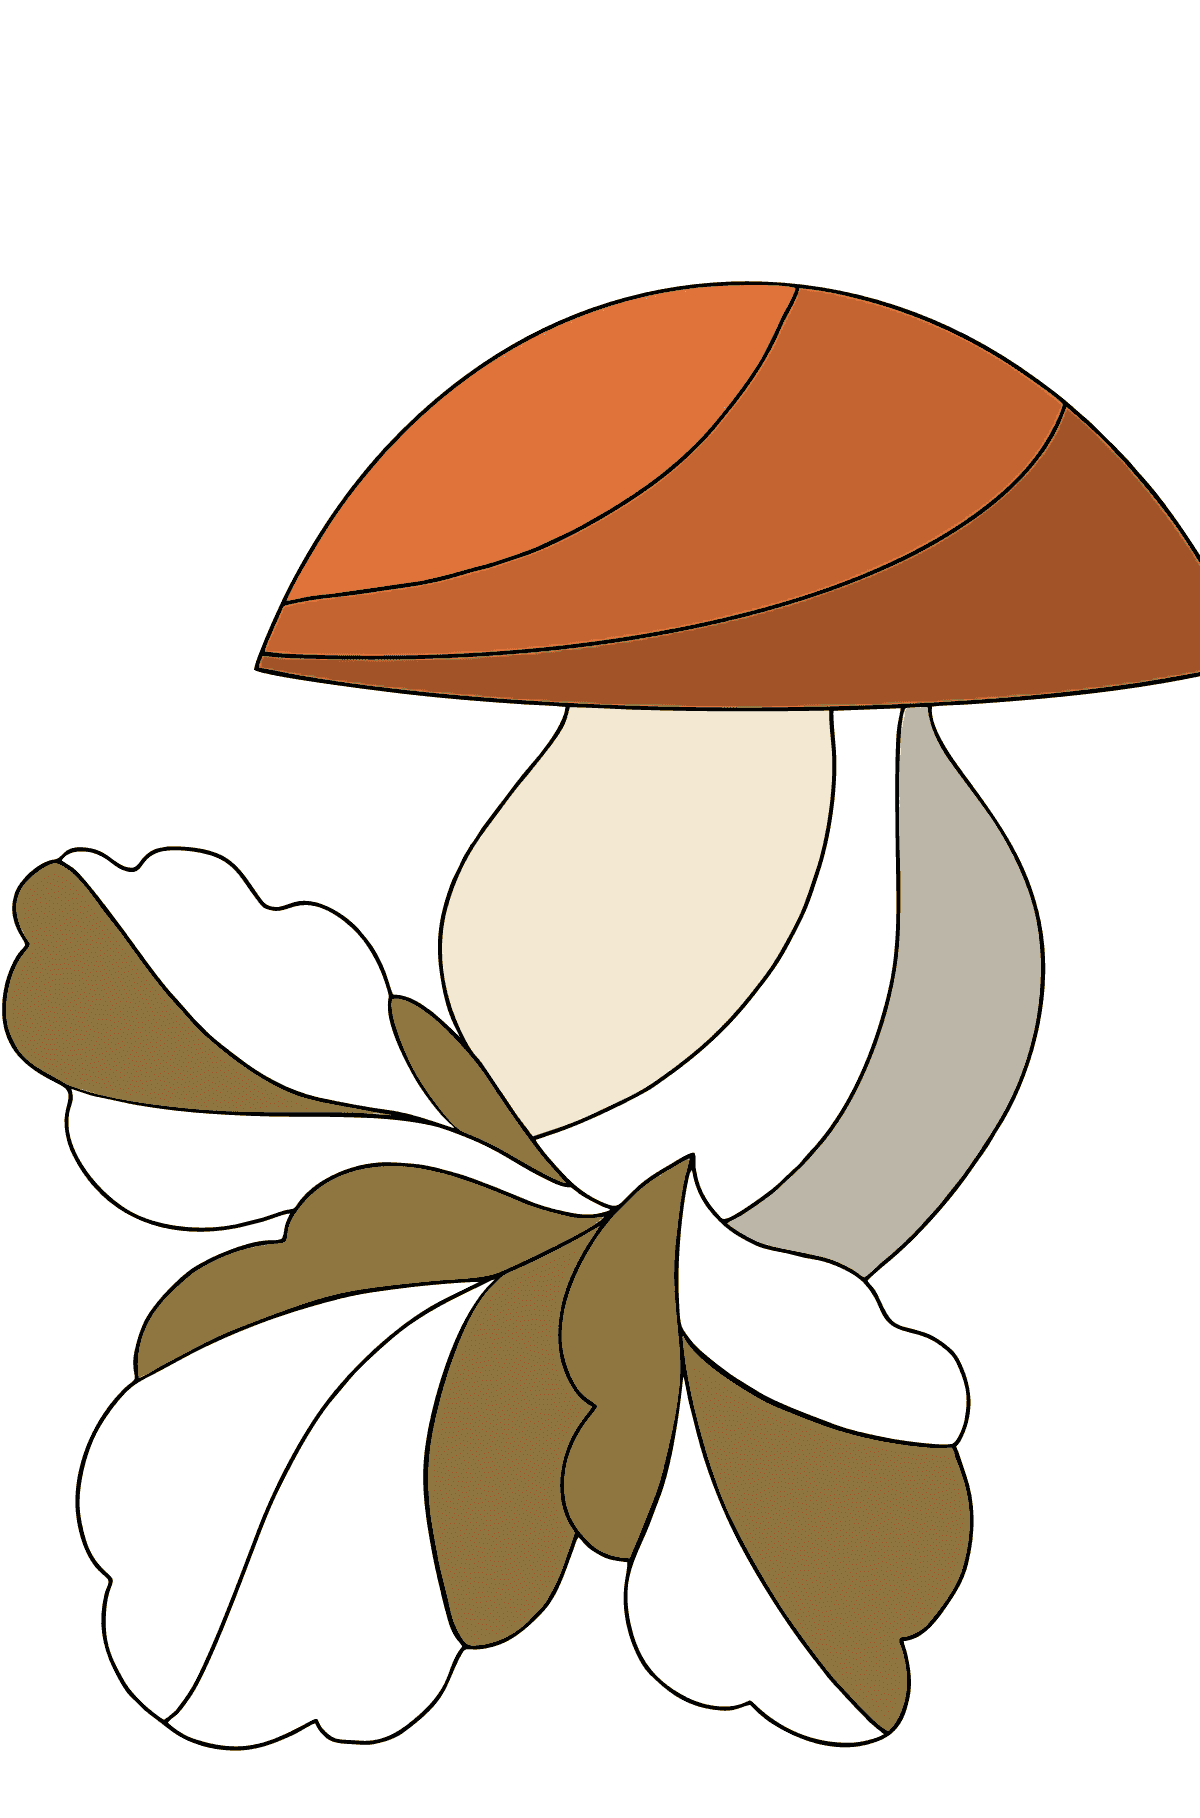 Autumn Coloring Page - Mushroom Harvest Time for Kids